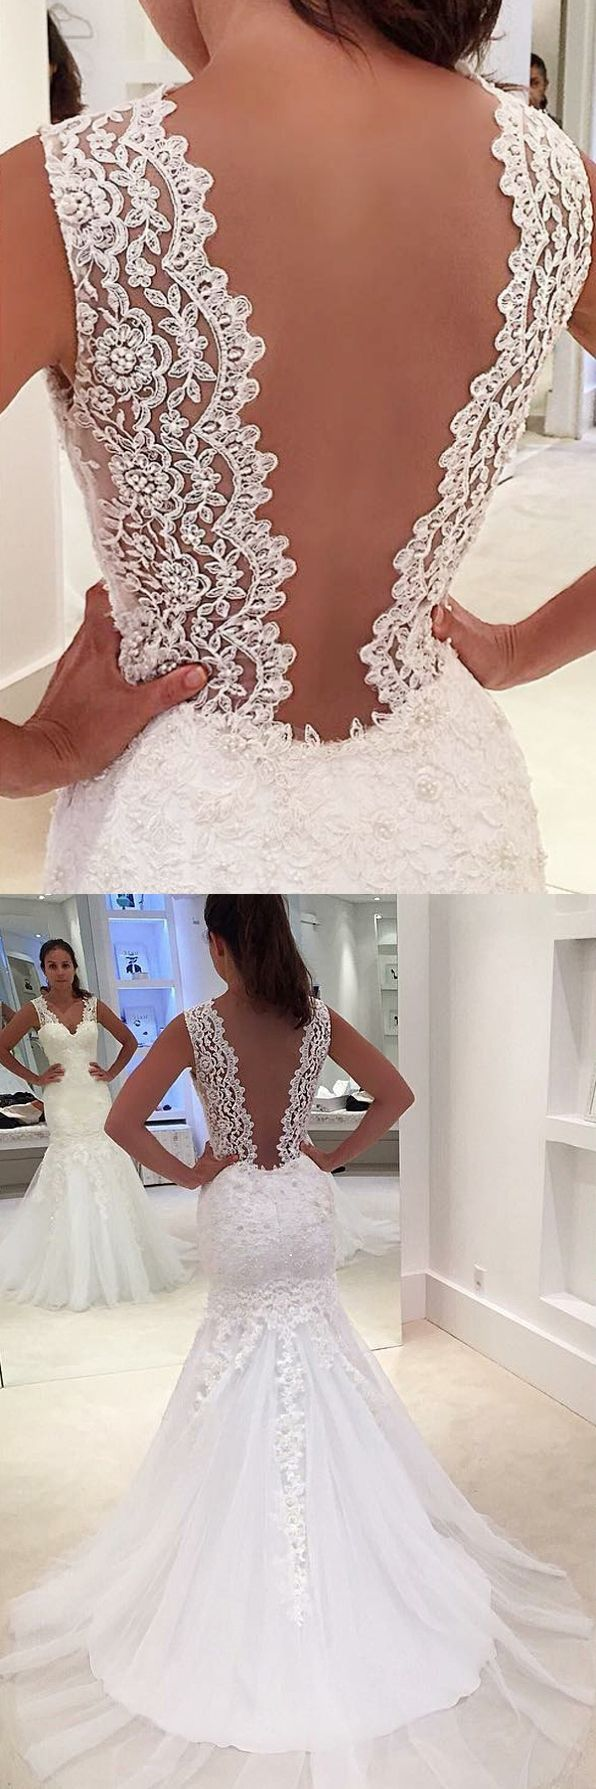 This back lace is everything